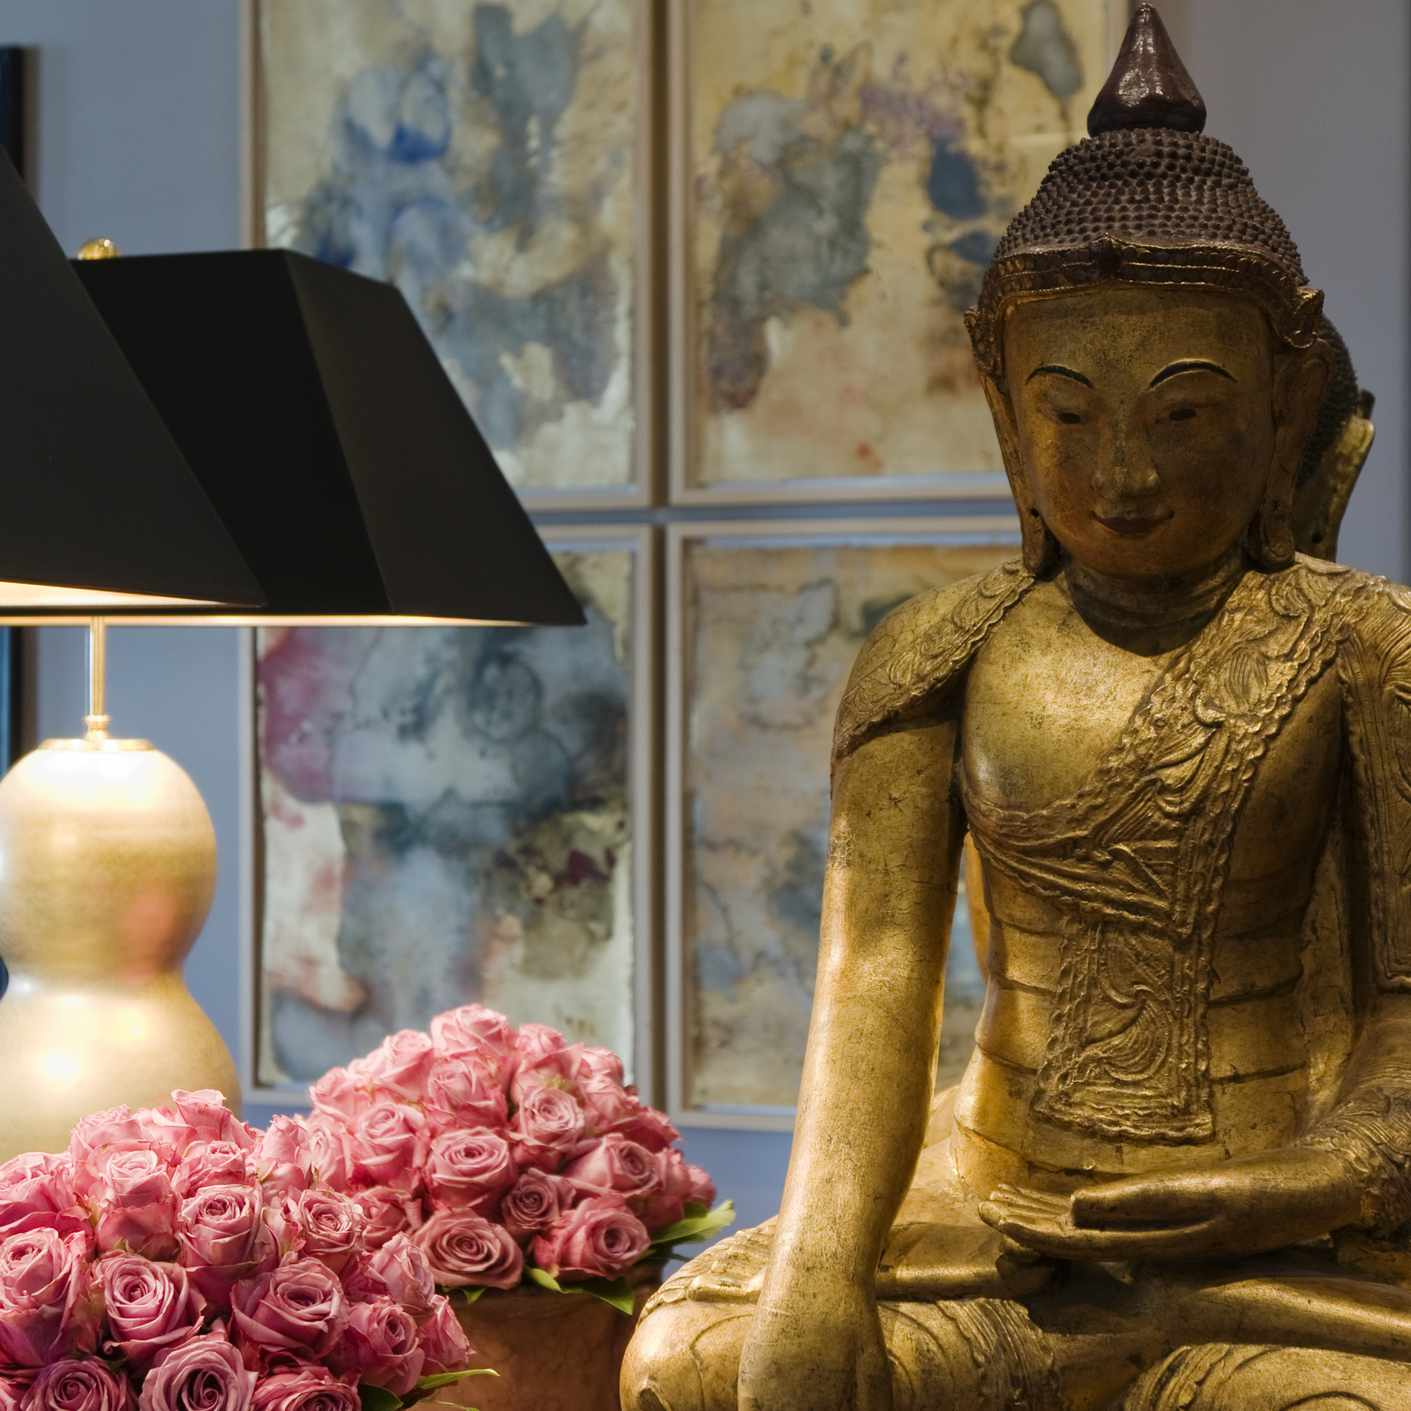 buddha on a table with mirror, flowers, and lamp